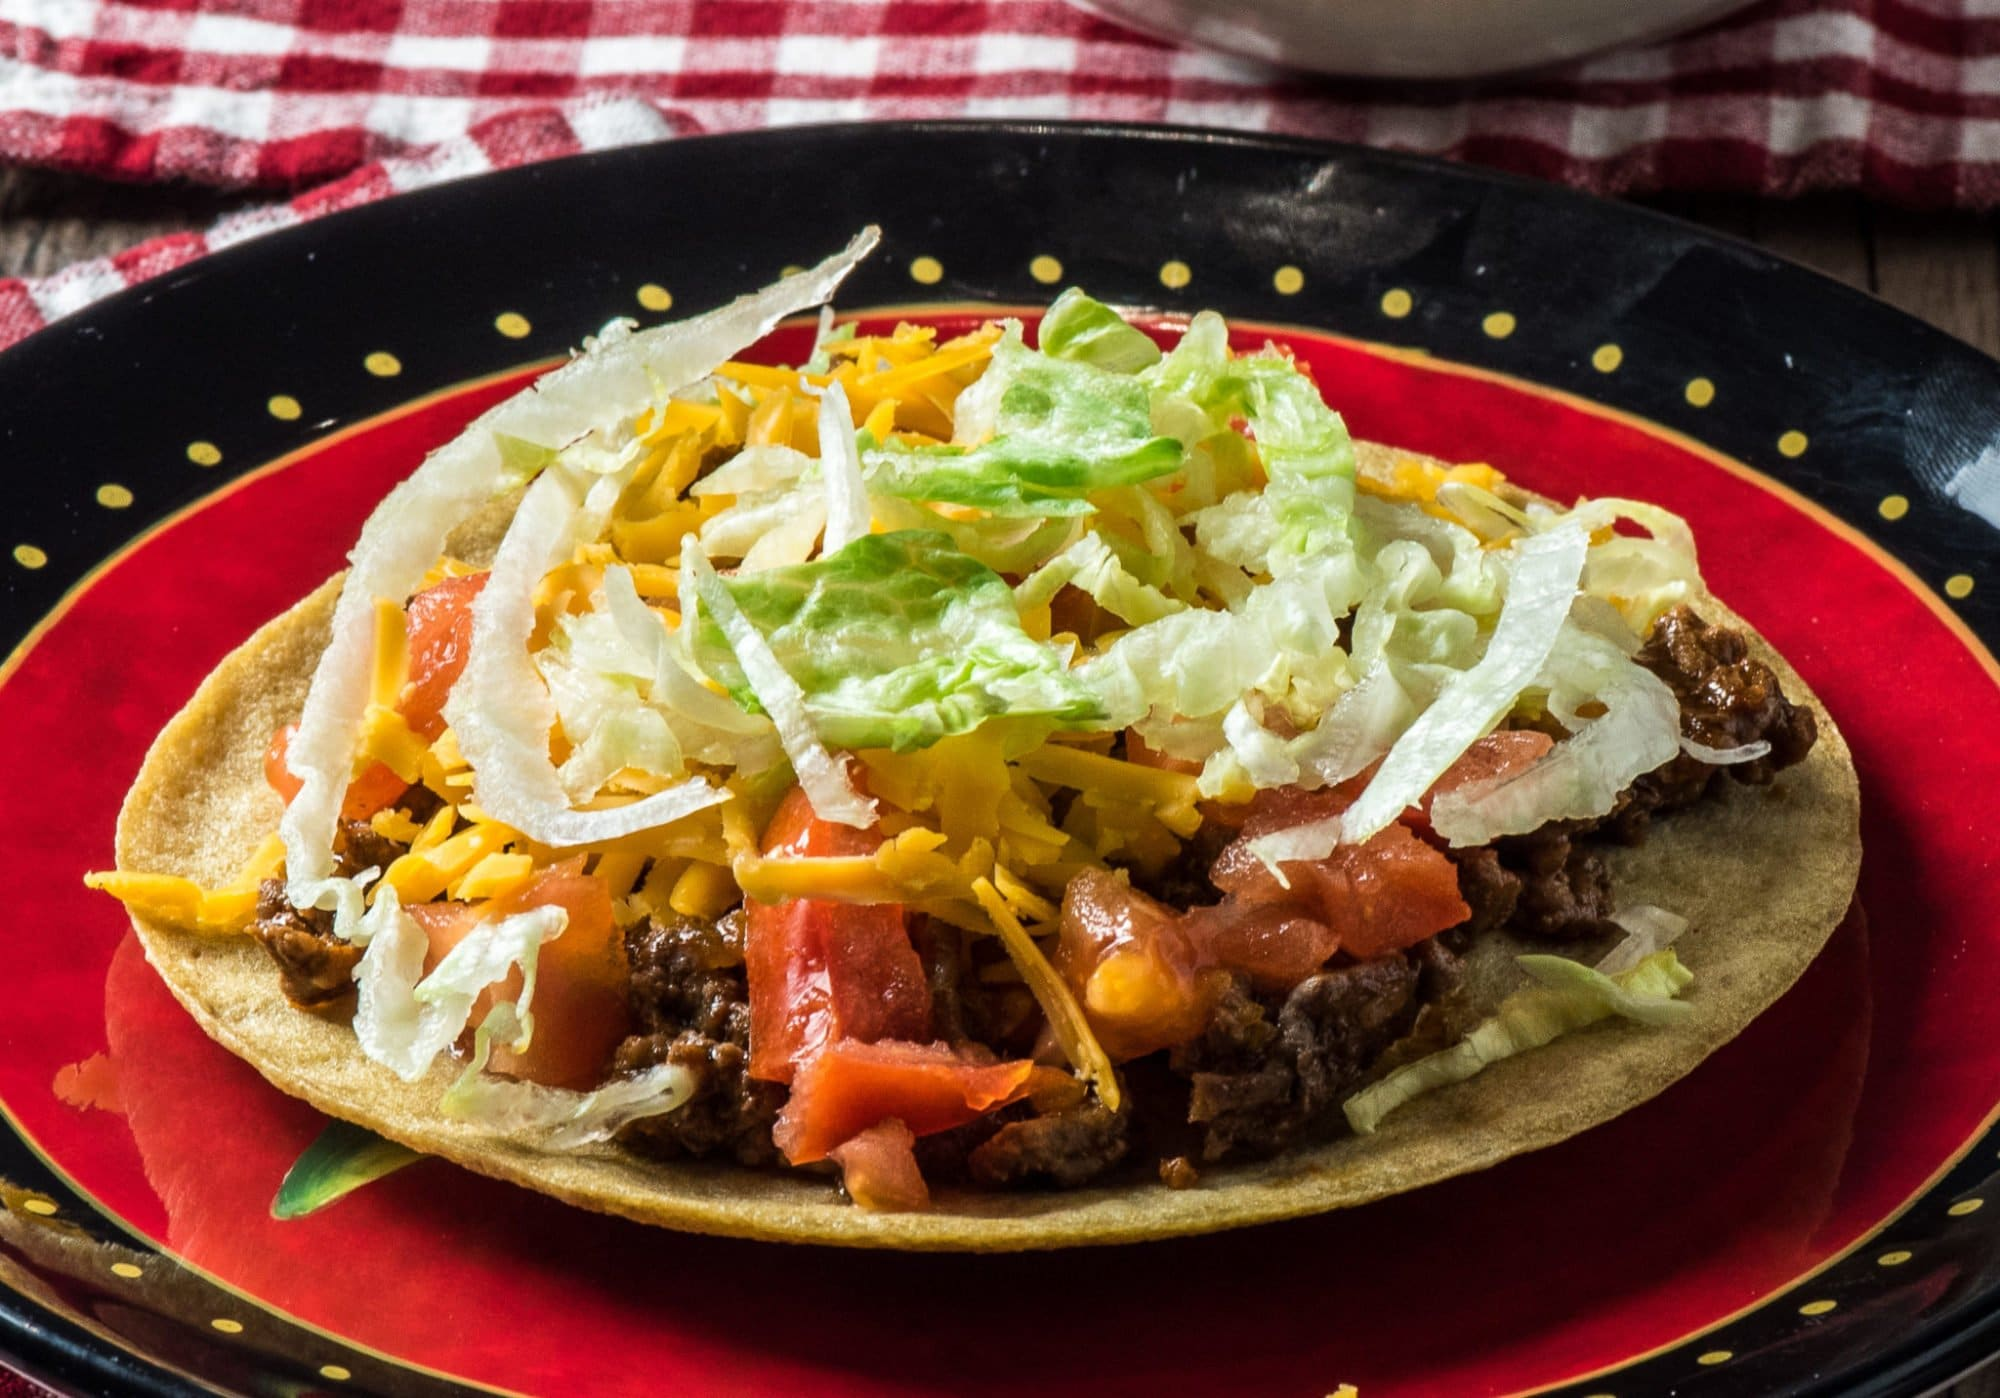 Ground Beef Tacos with Homemade Seasoning - Tasty Low Carb